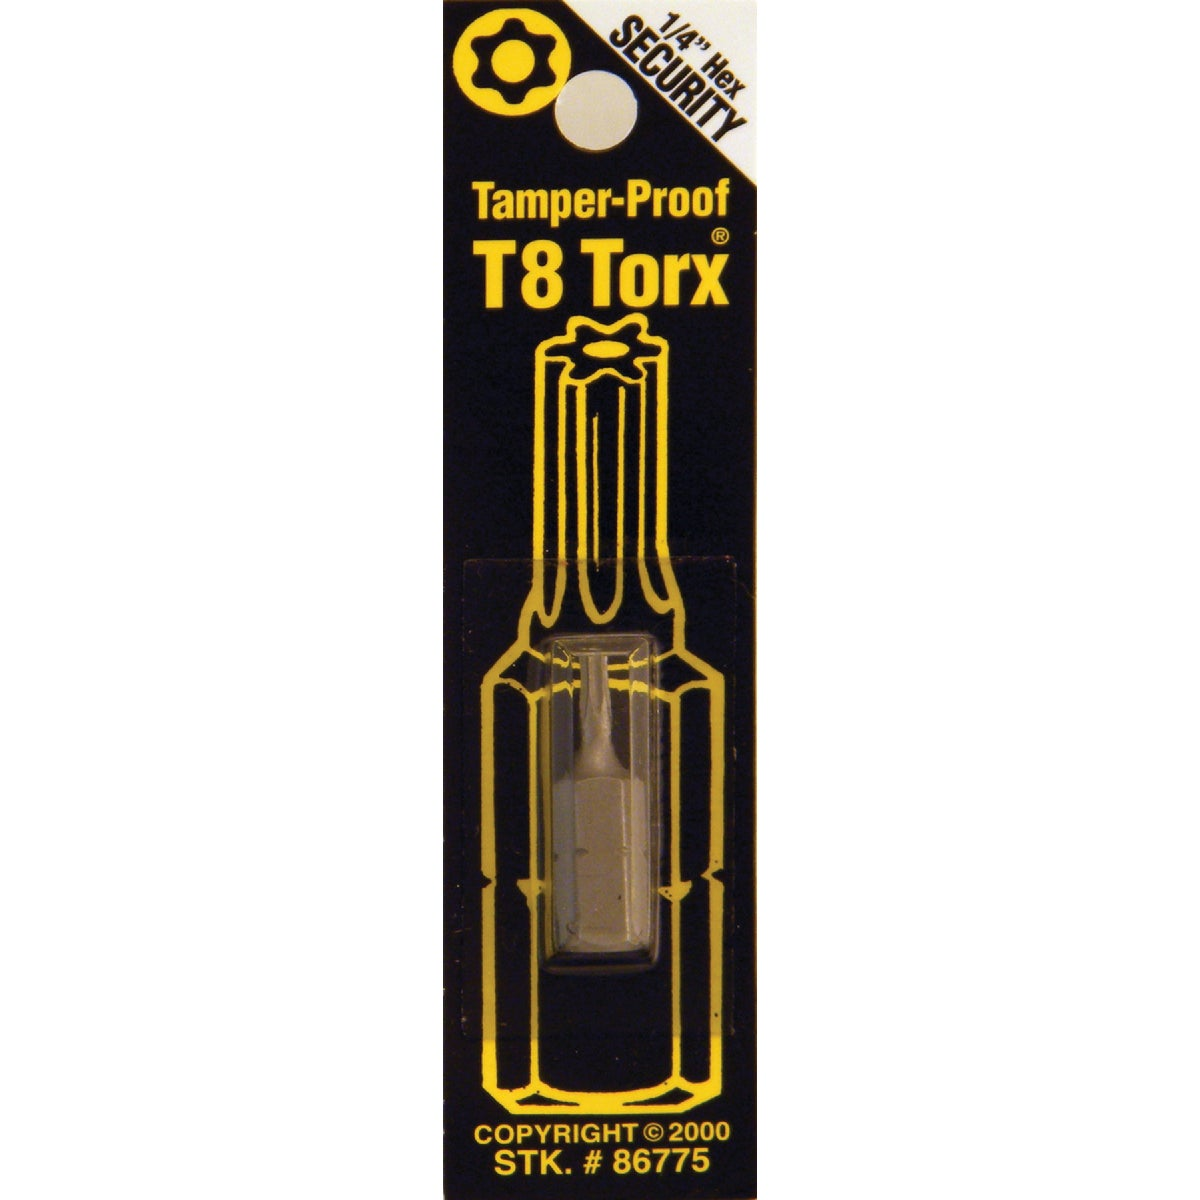 T8 TMPR SECURITY BIT - 86775 by Bwt Inc